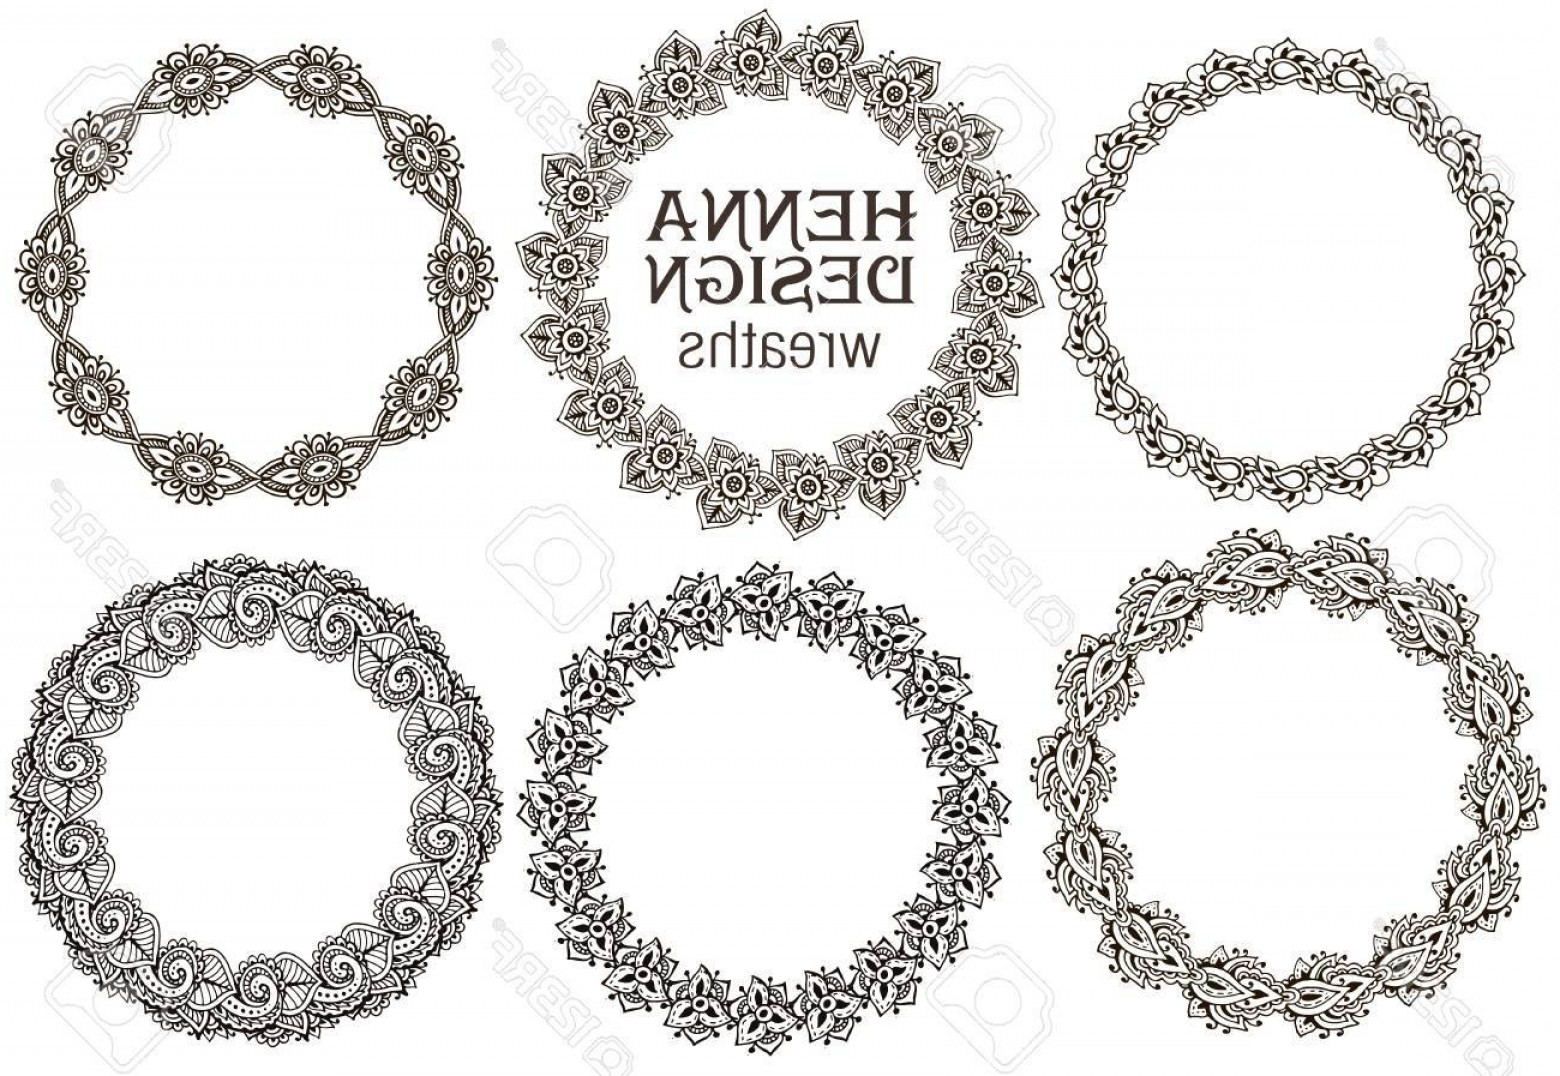 Tattoo Templates Vector Frames: Photostock Vector Vector Set Of Henna Floral Round Frames Based On Traditional Asian Ornaments Paisley Mehndi Tattoo D